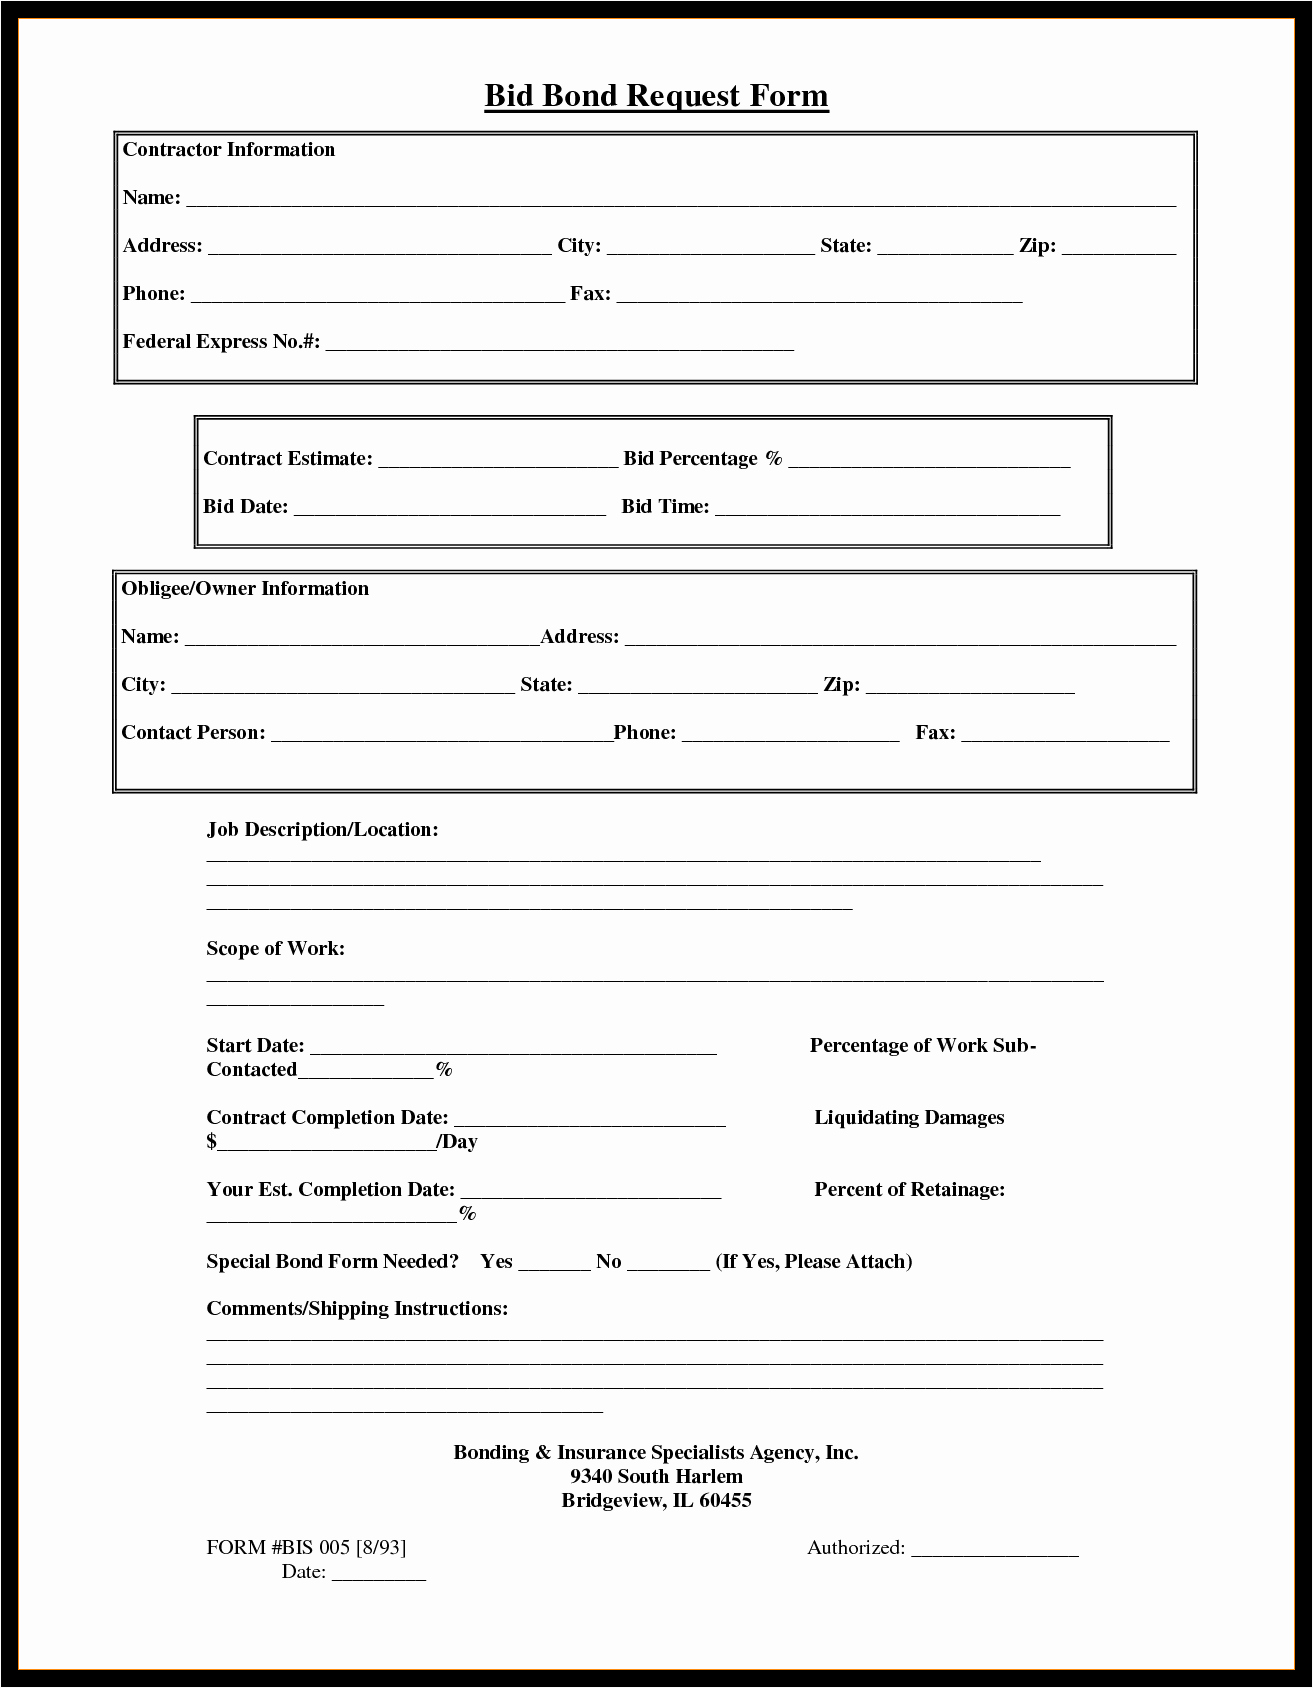 Design Request form Template Beautiful Bid |最新詳盡直擊 [文 圖 影] 生活資訊 3boys2girls